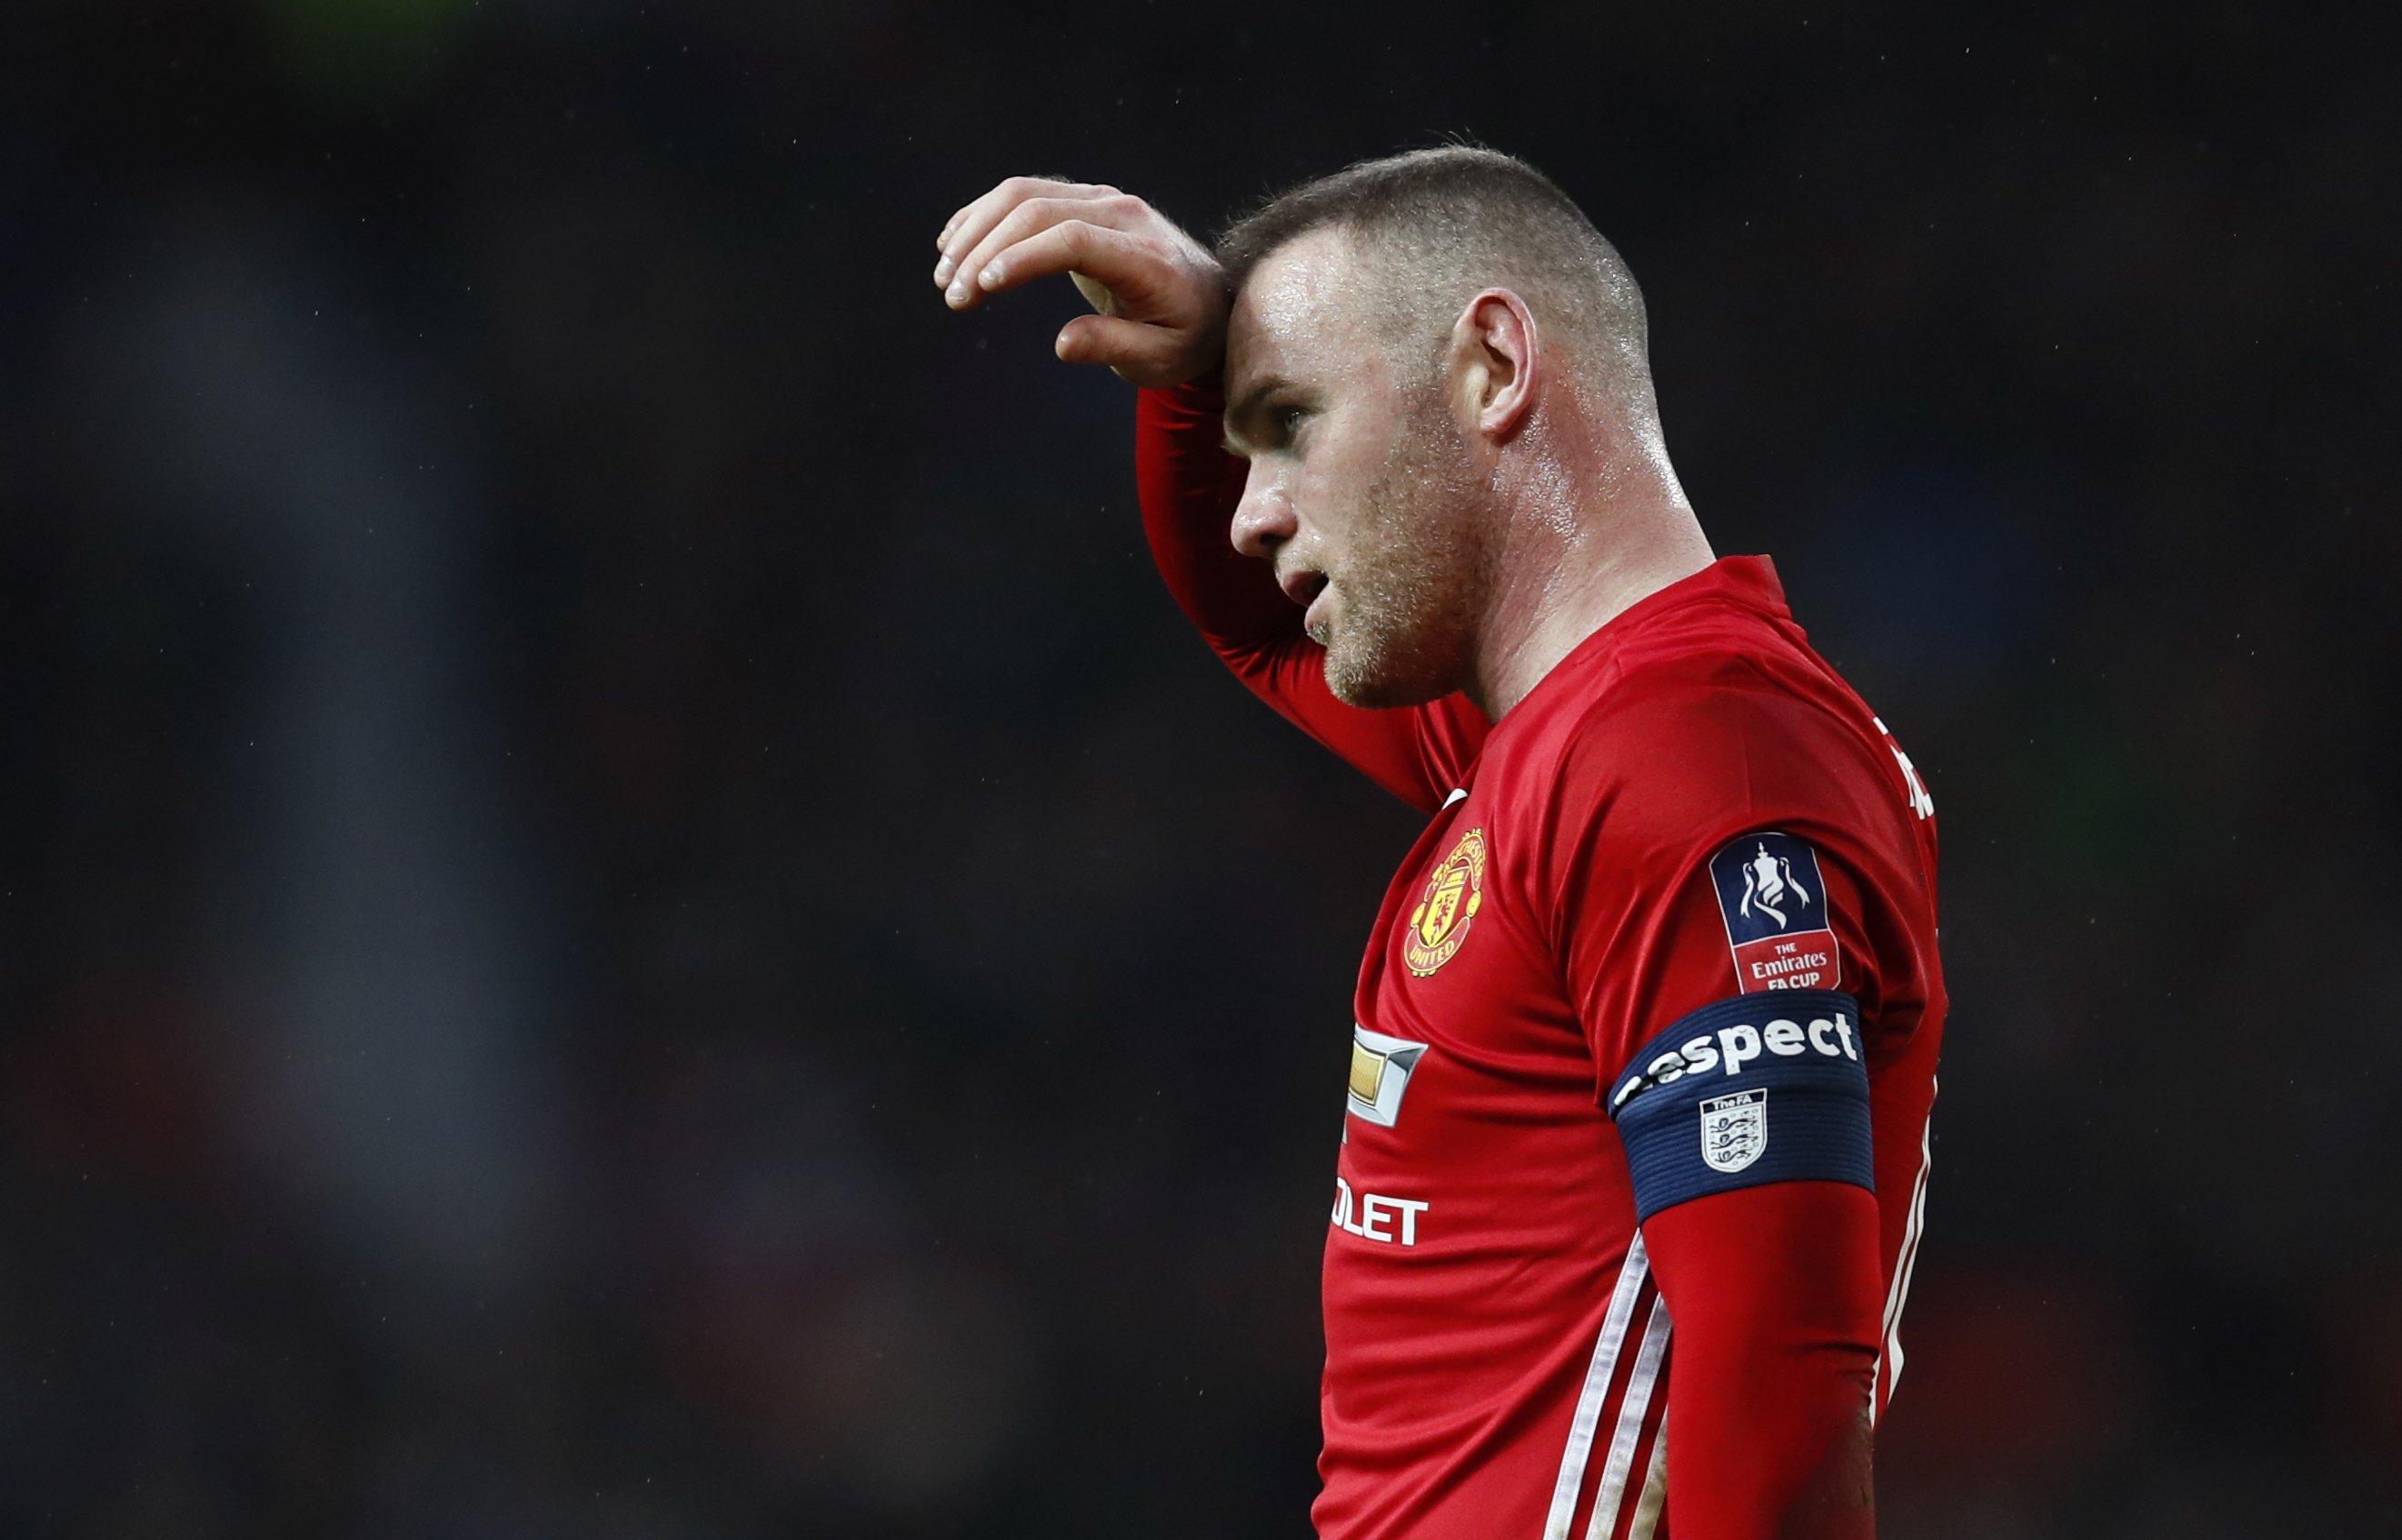 wayne rooney is struggling with muscle injury photo reuters